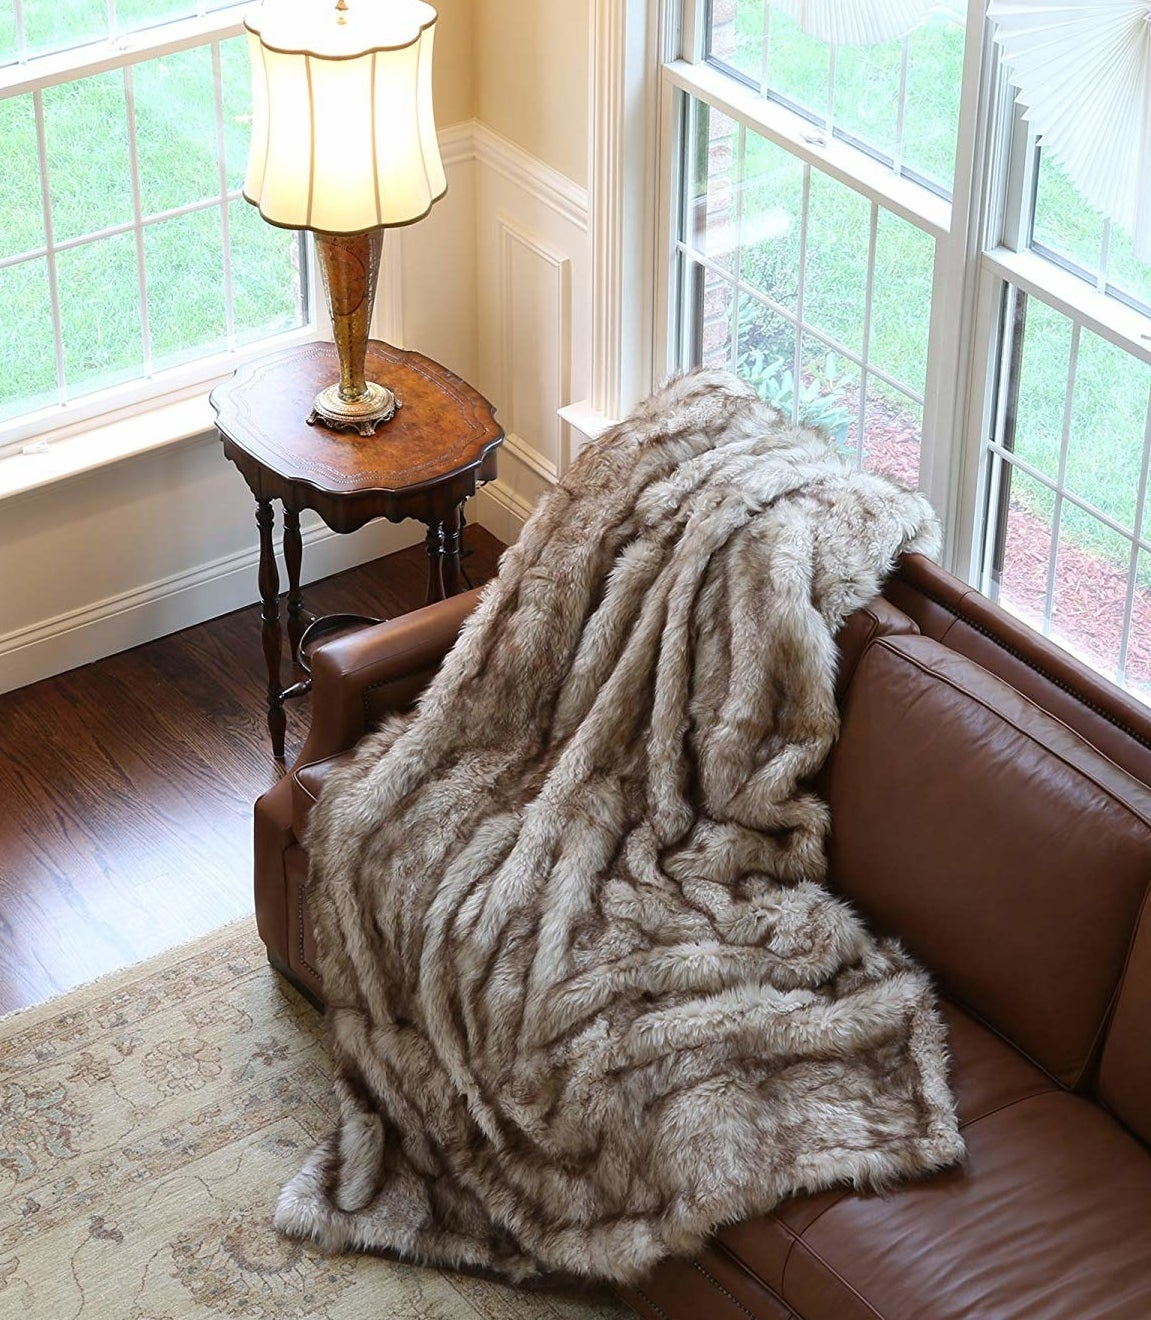 The brown furry blanket draped over a couch